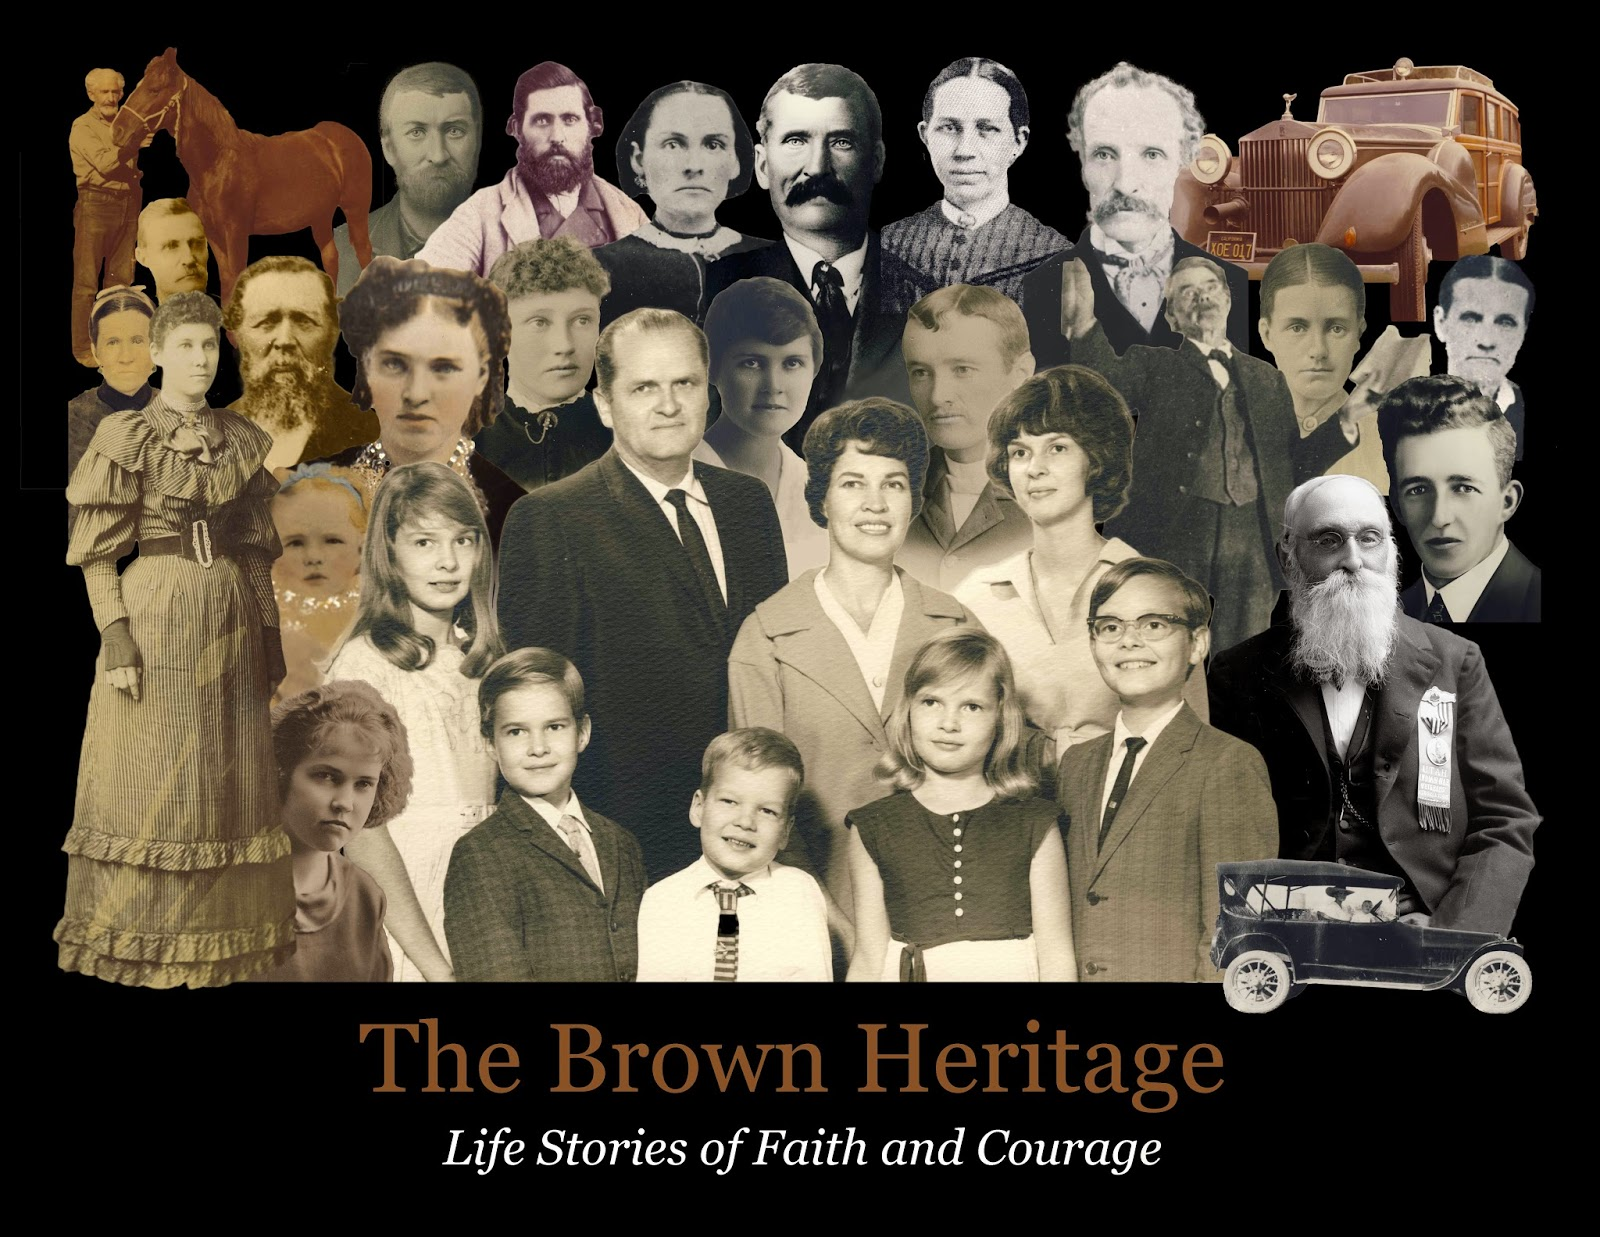 http://gatheringgardiners.blogspot.com/2014/11/the-brown-heritage-life-stories-of.html